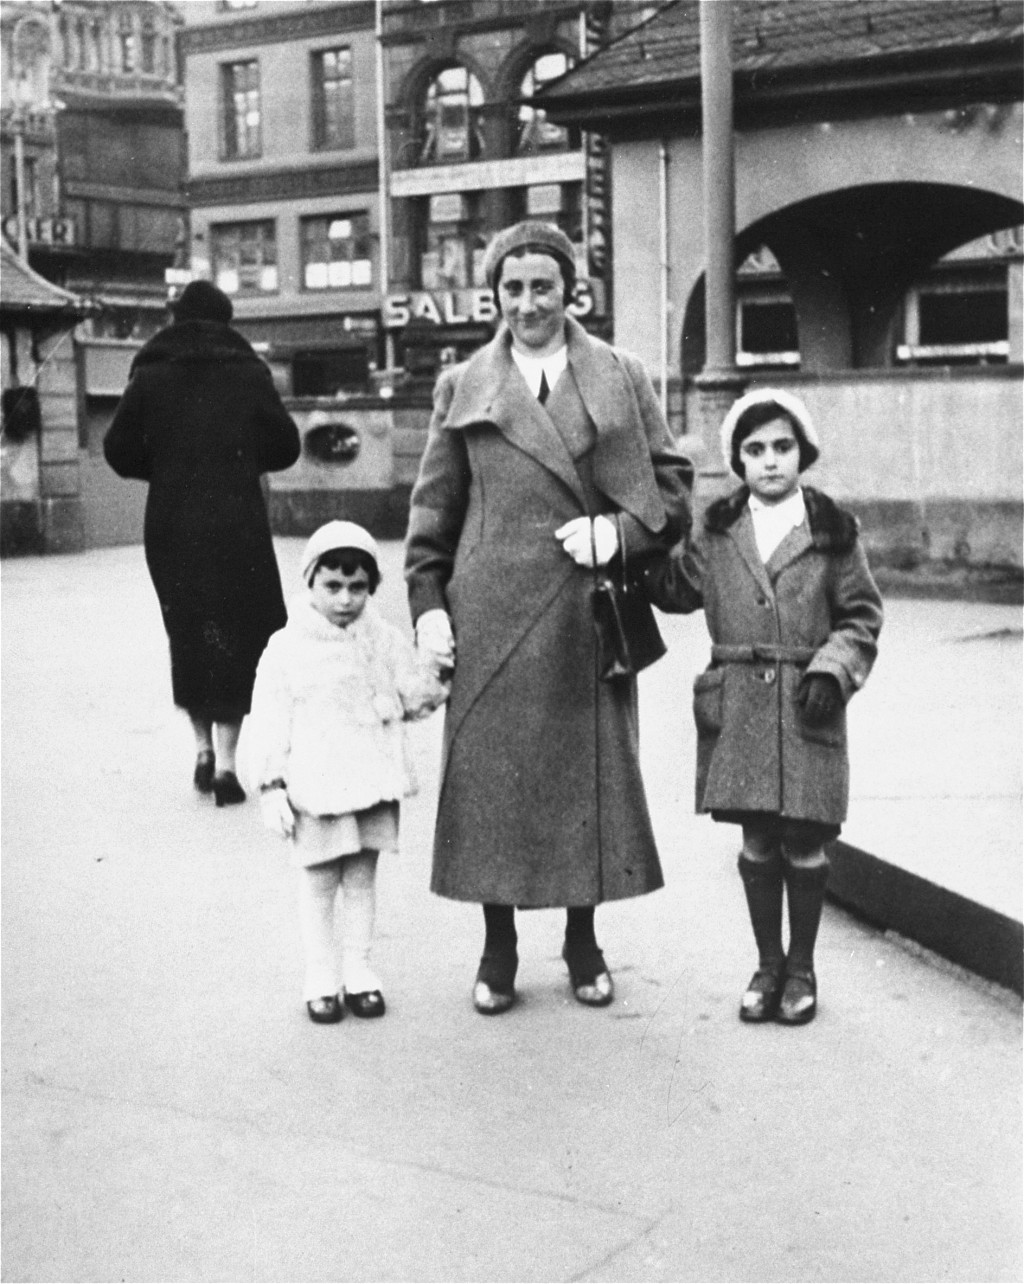 Anne Frank with her mother and sister. Frankfurt, Germany, 1933. [LCID: 62124b]